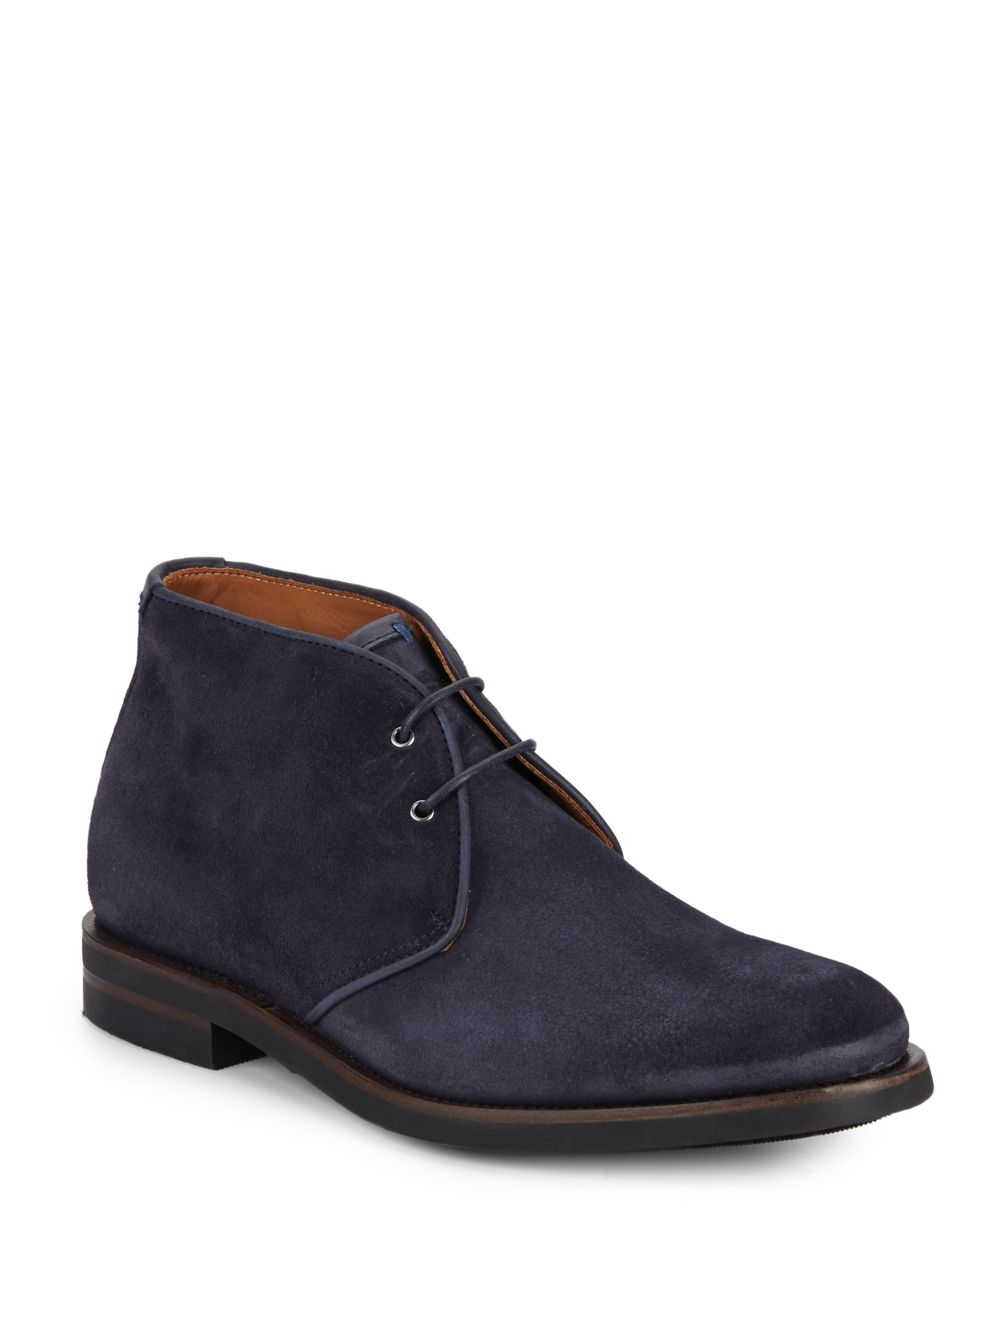 aquatalia carlos suede chukka boots in blue for lyst